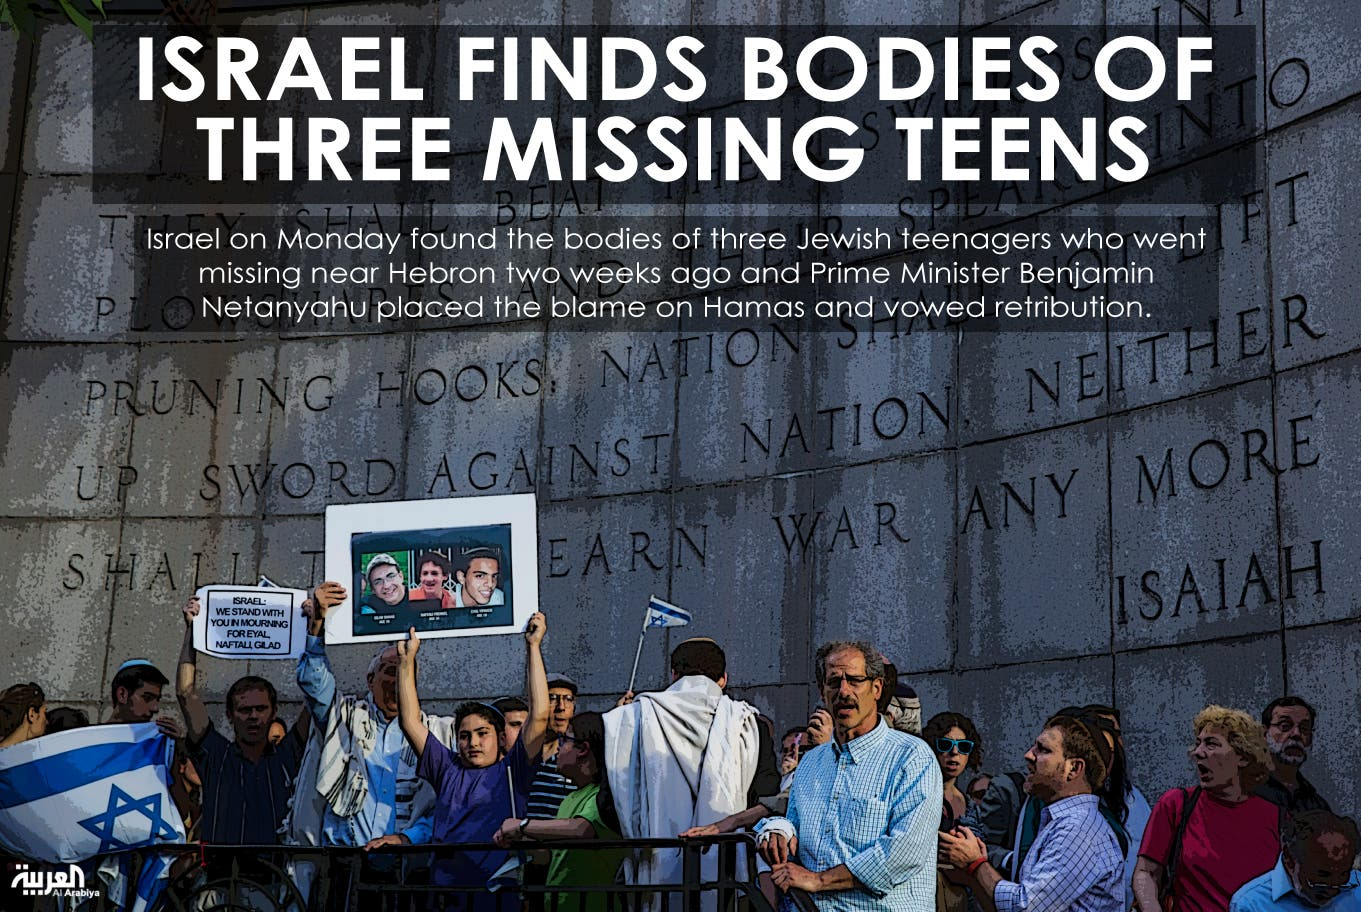 Israel finds bodies of three missing teens